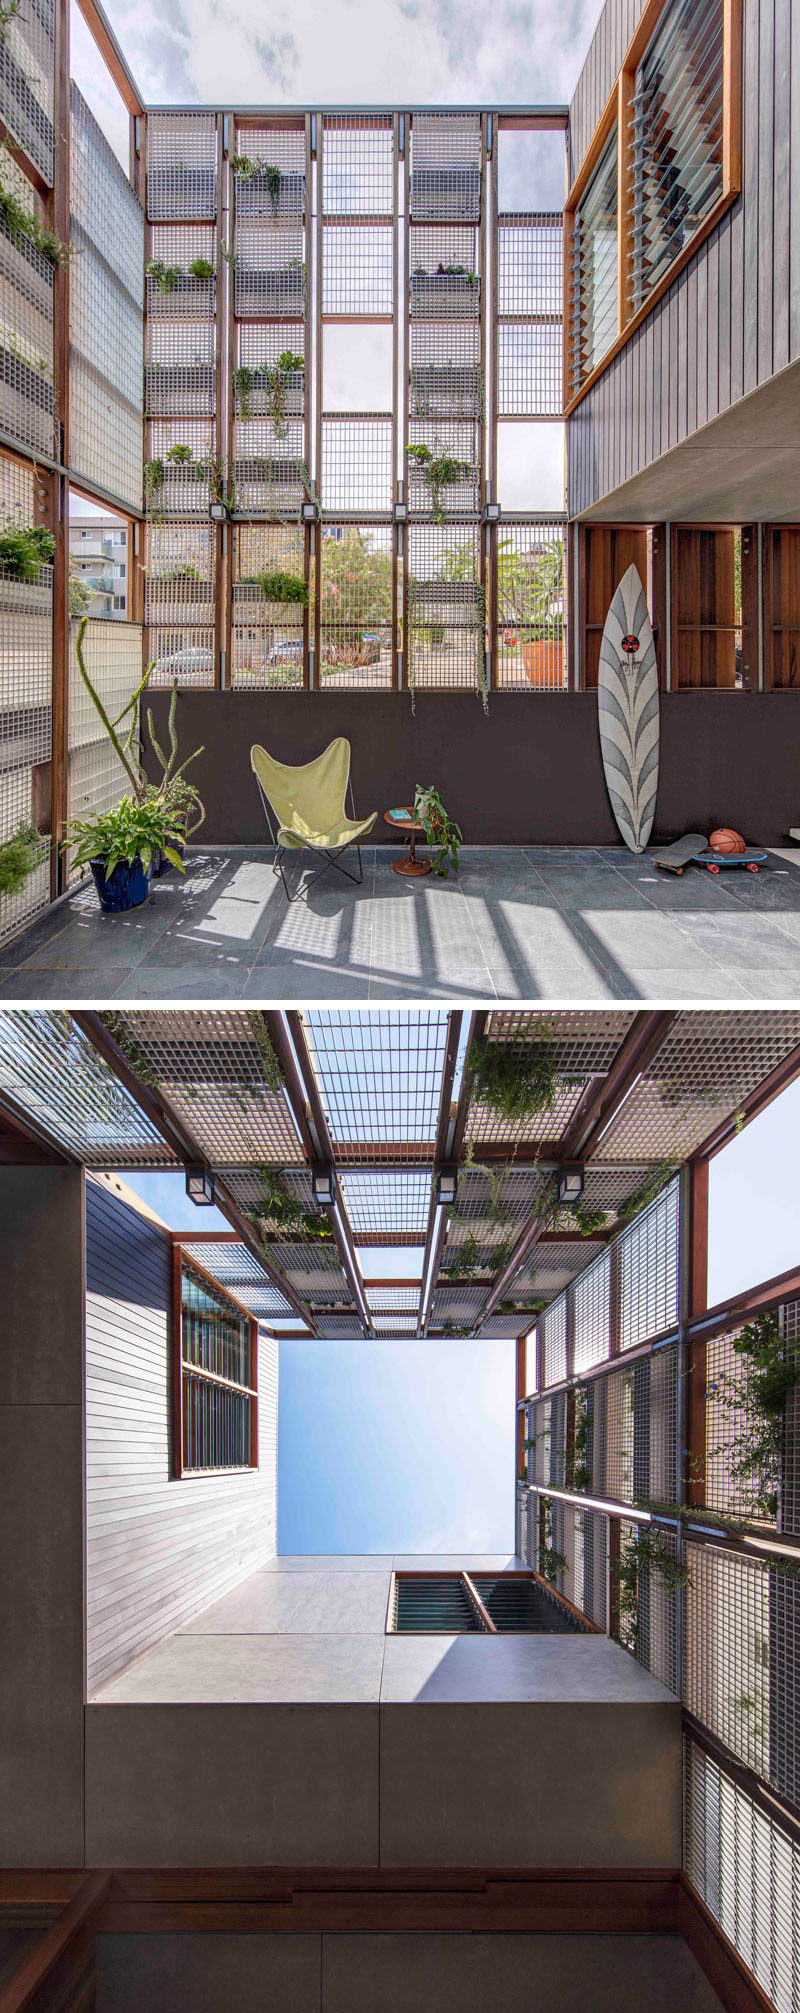 This modern Australian house has an inner courtyard with a grid of plants on a wall that will grow overtime to create a green wall.